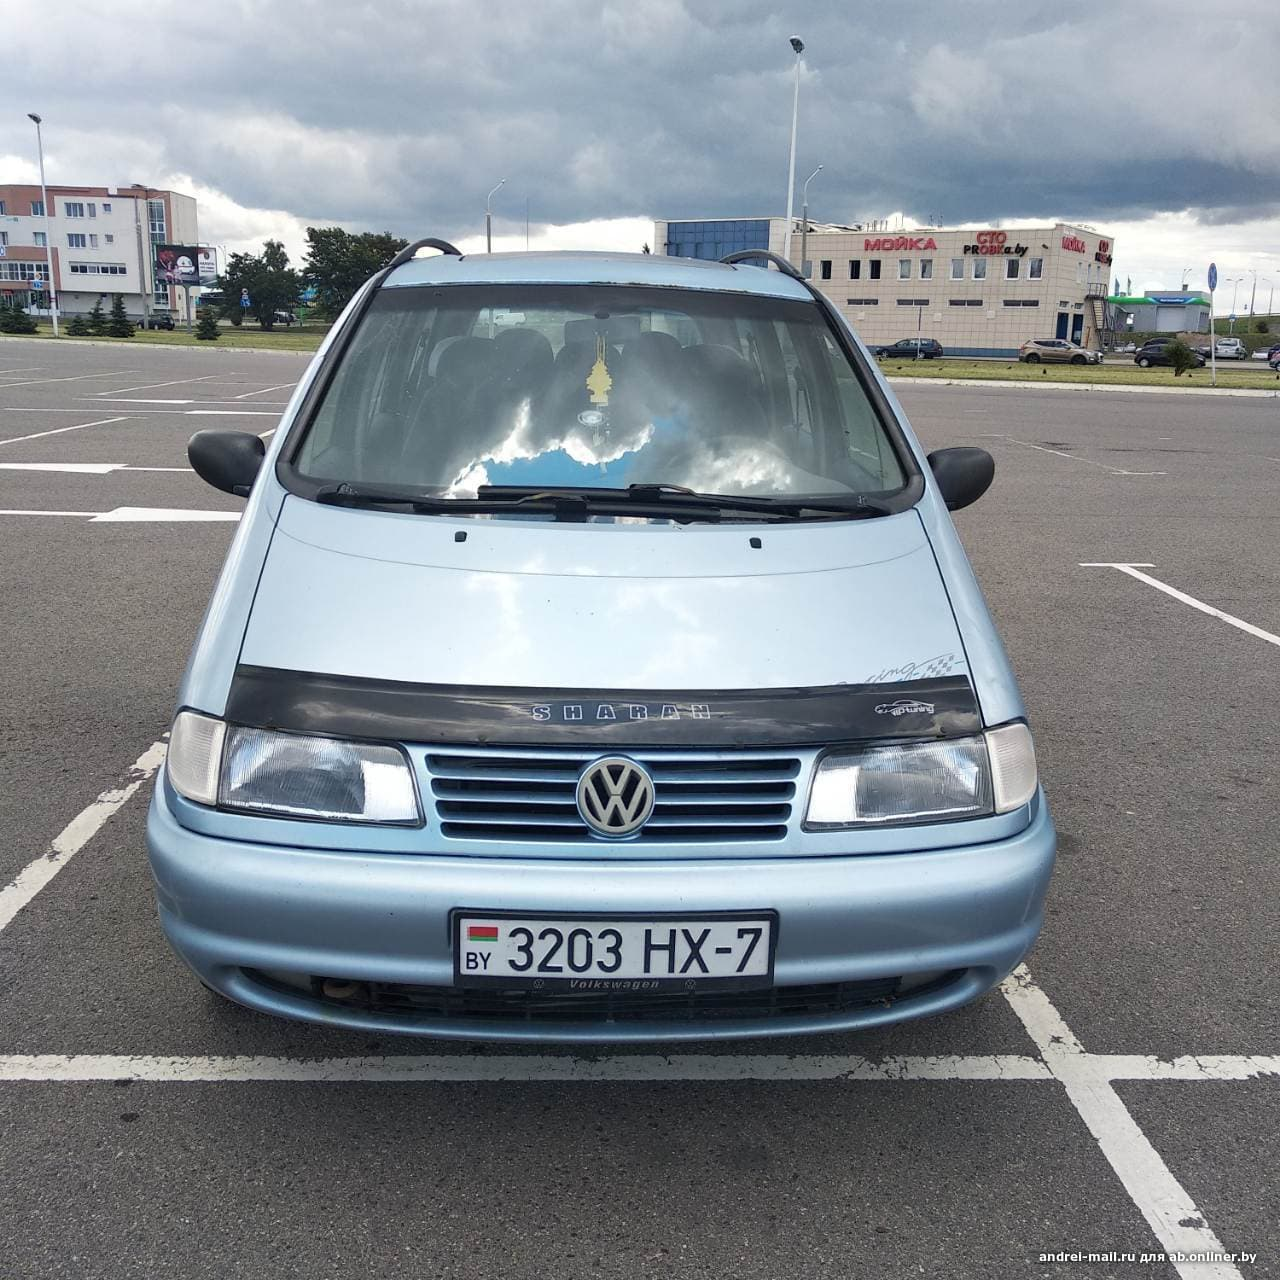 Volkswagen Sharan cx